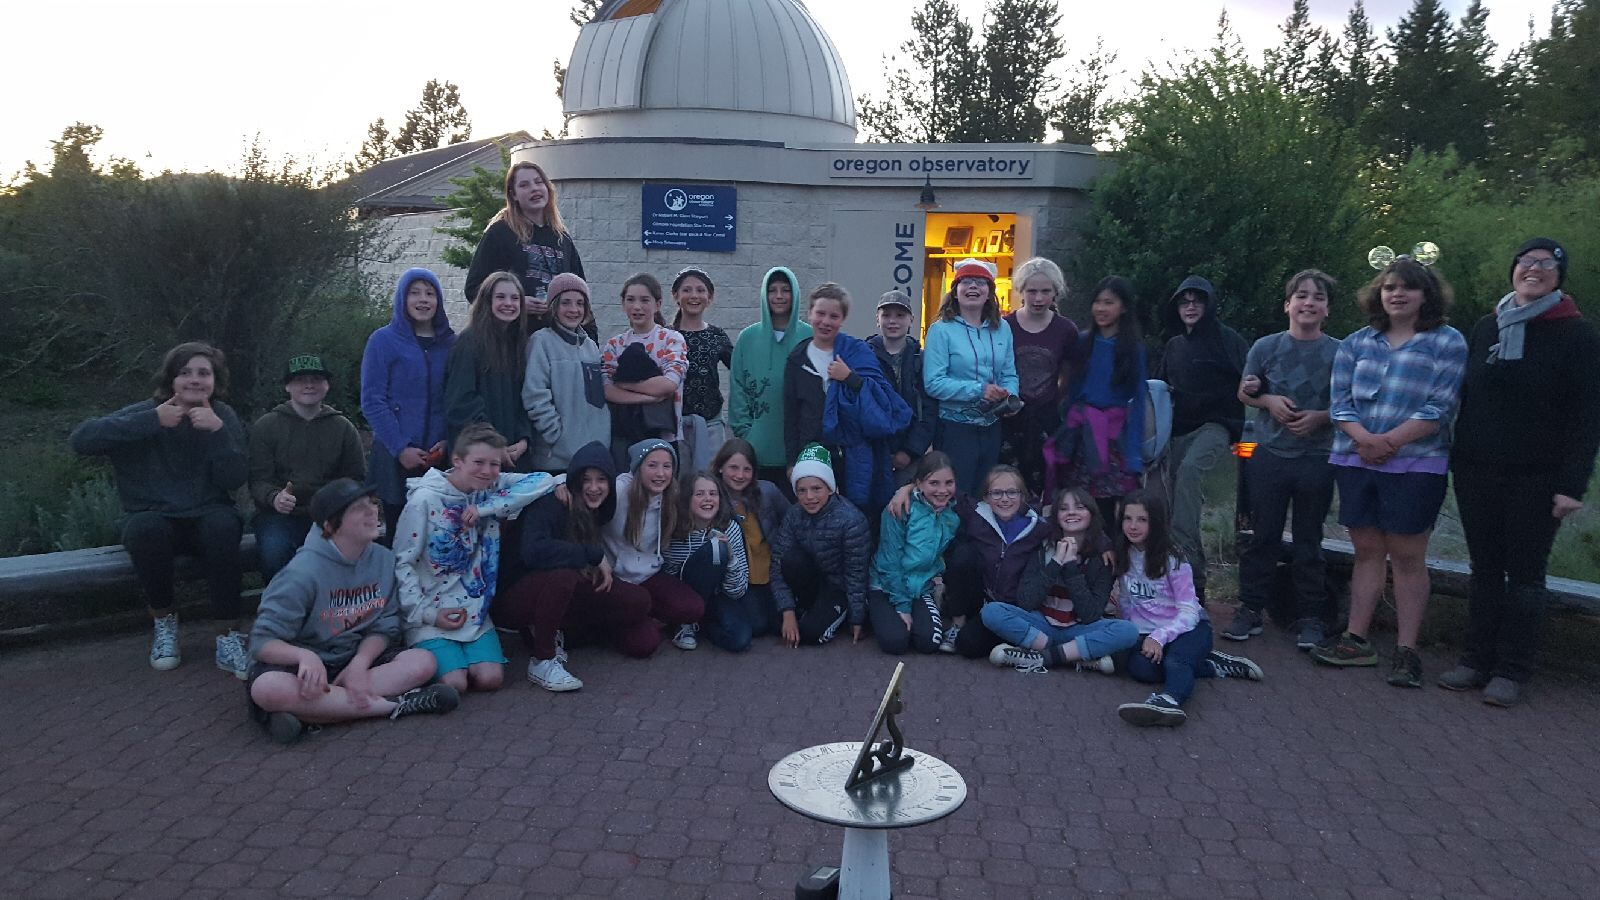 6th graders at the Oregon Observatory near Bend [click image to see entire picture]